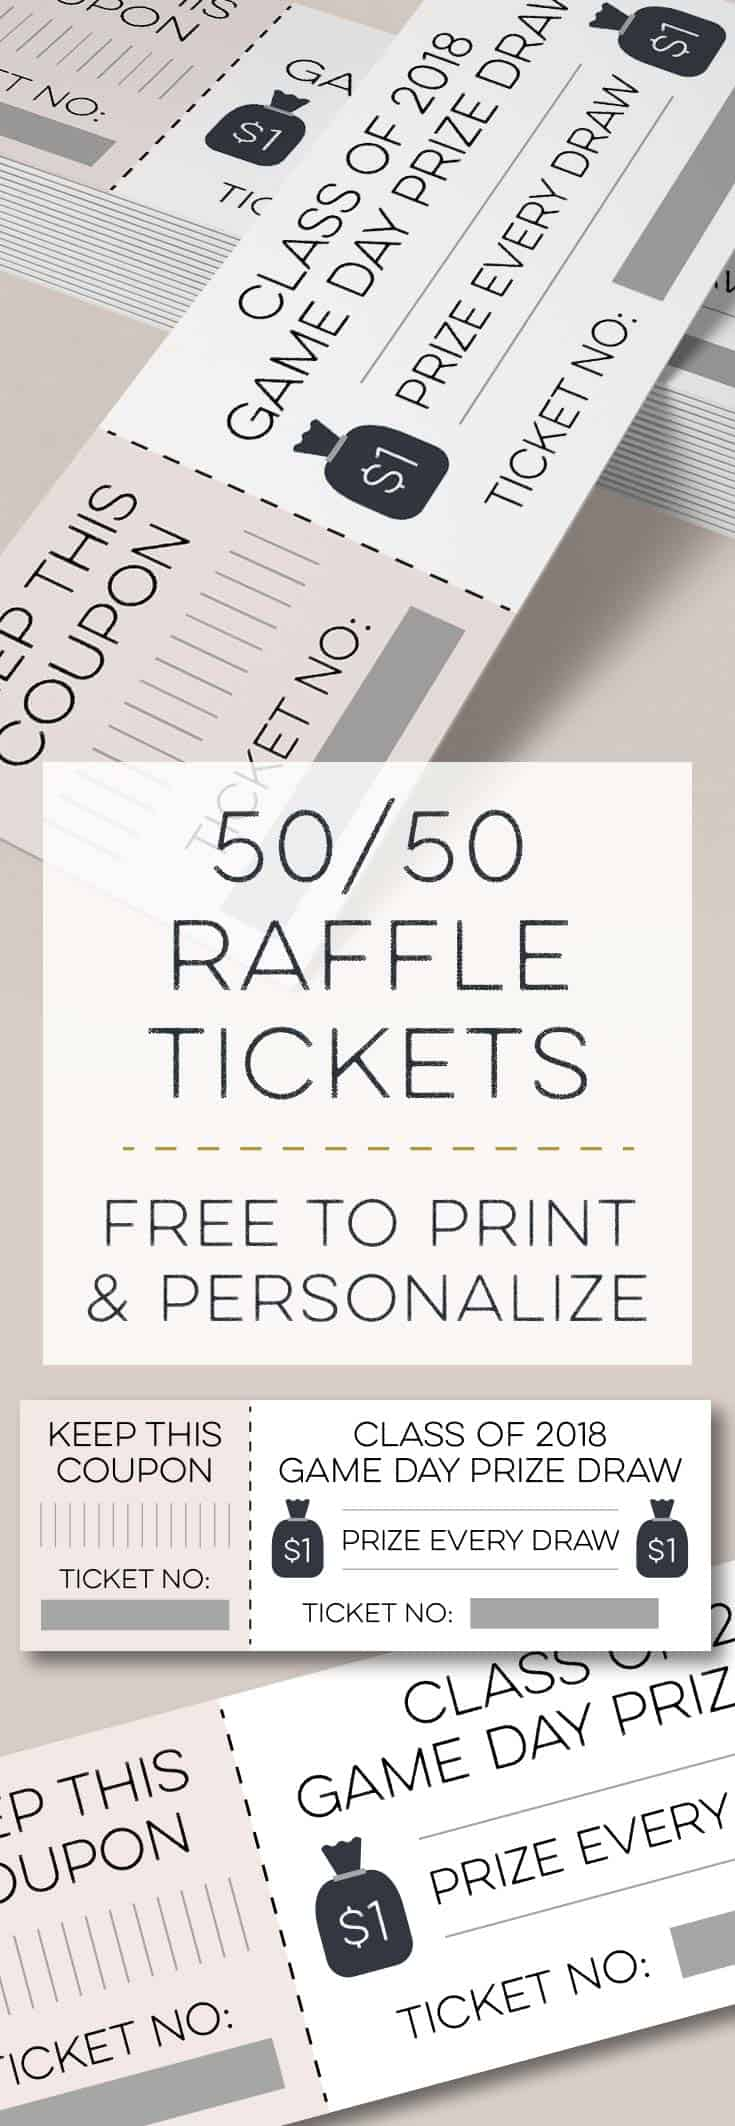 Moneybags 50 50 raffle tickets free printables online for 50 50 raffle tickets template